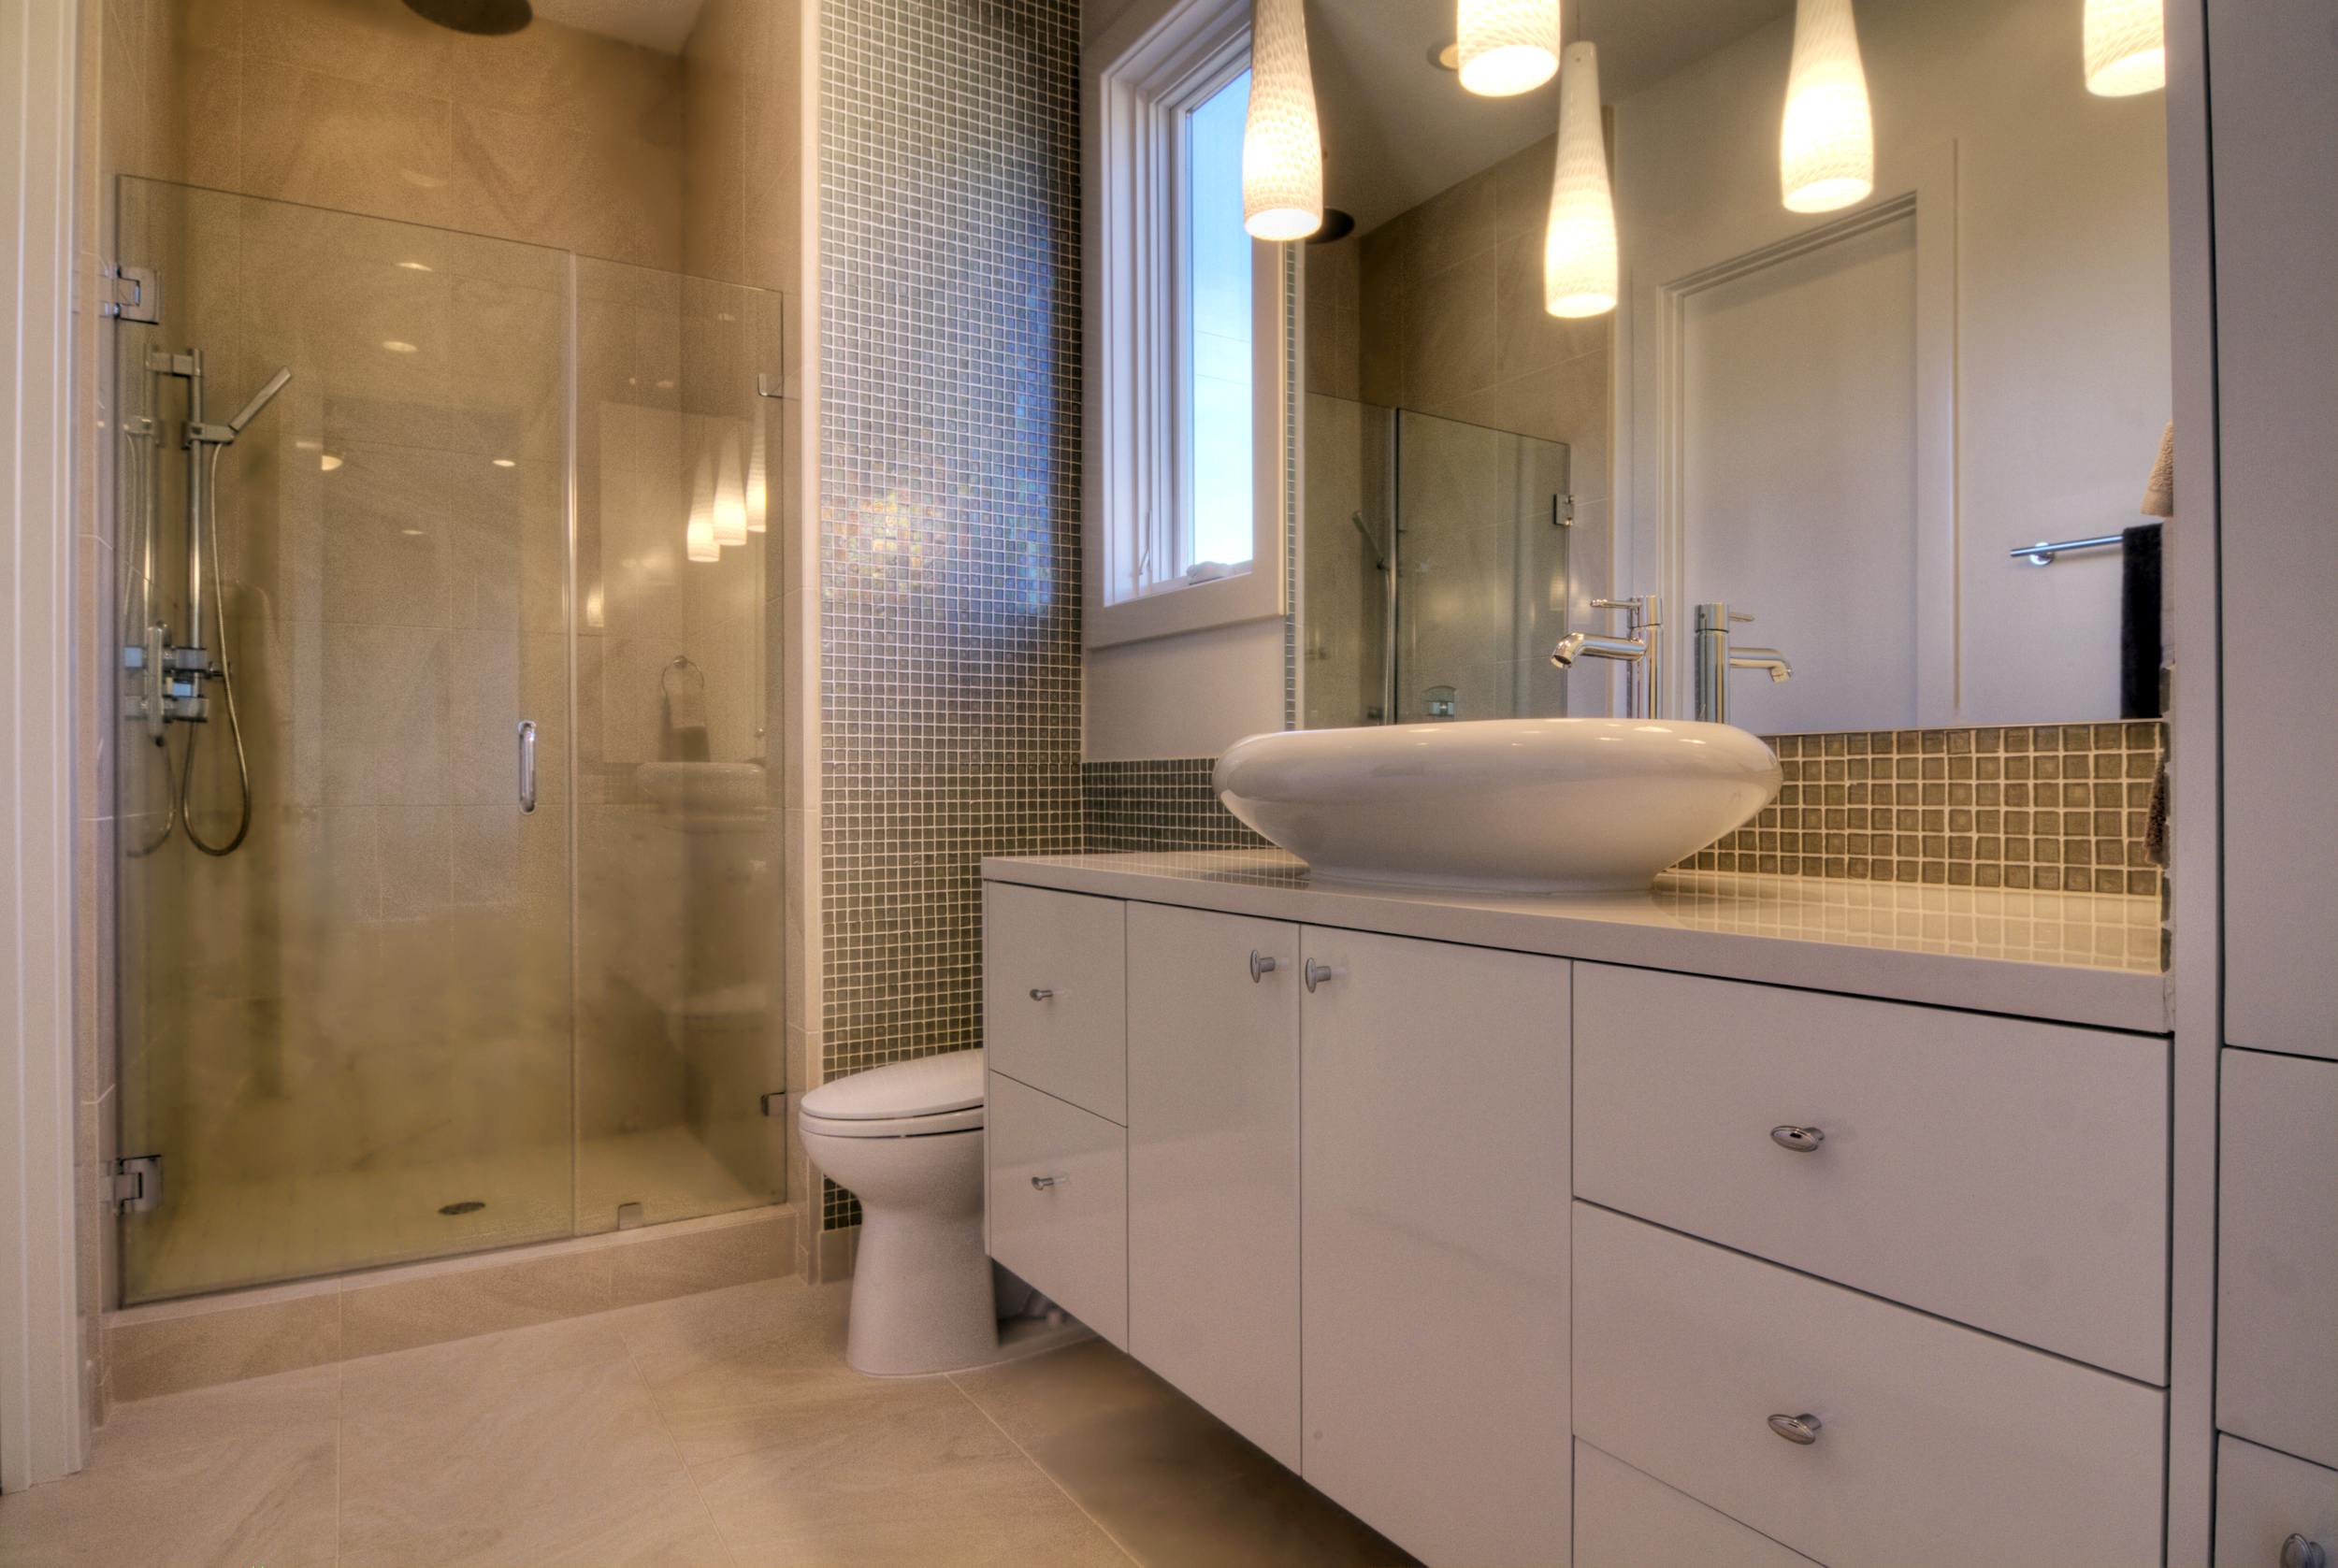 Chatham Lane - En Suite Bathroom for Back Right Bedroom.jpg